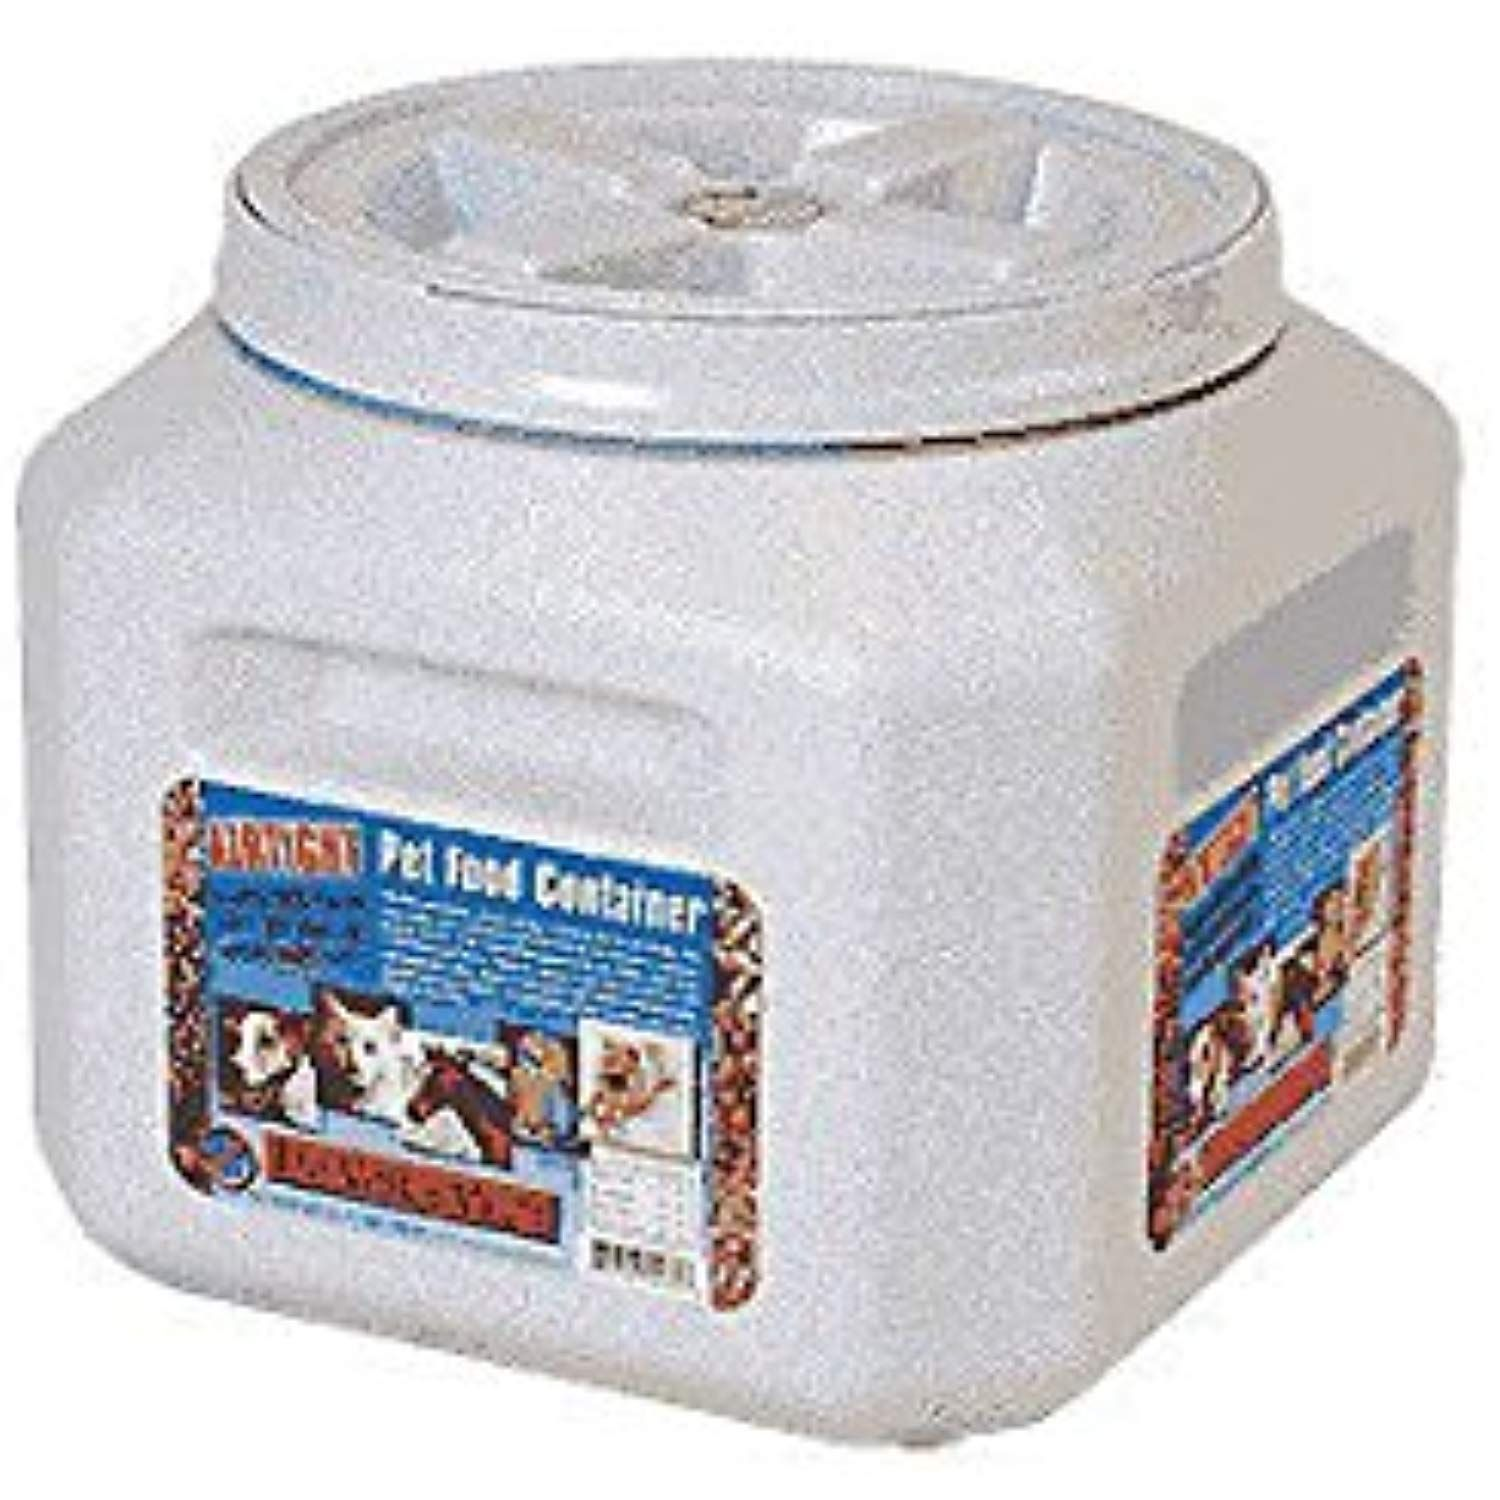 Vittles Vault Original Dog Food Sealed Air Tight Storage Containers